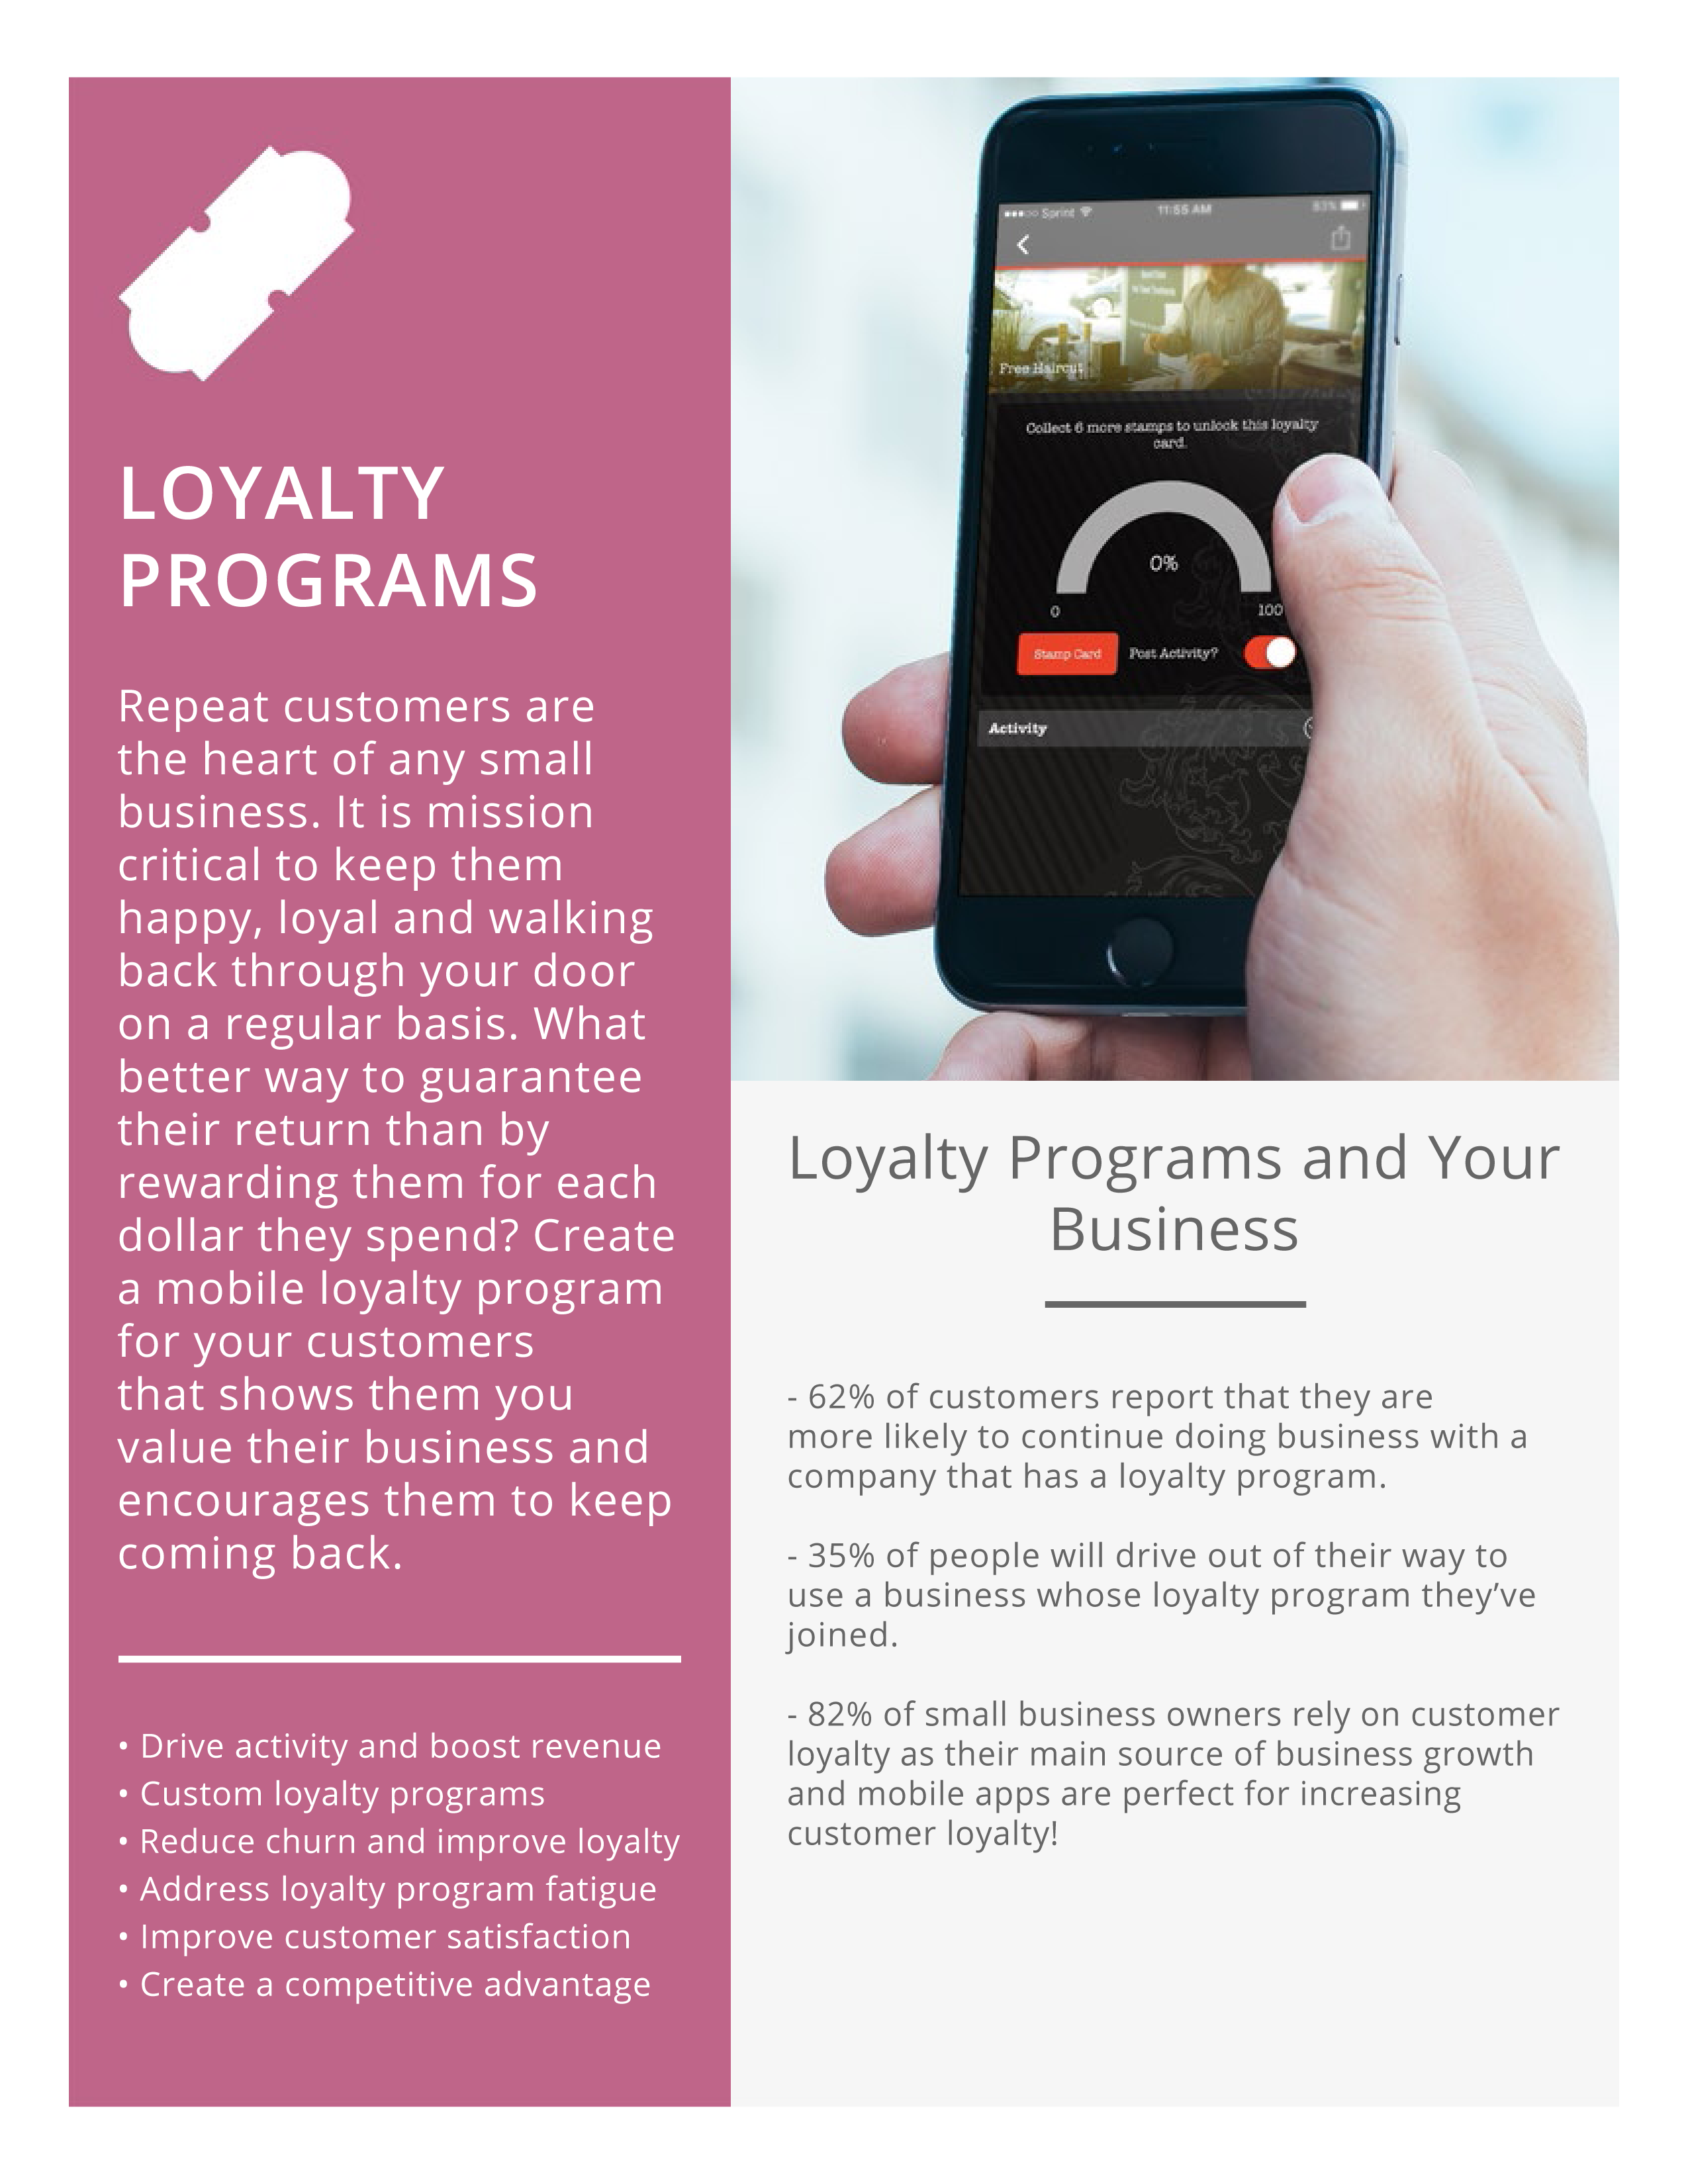 loyalty_programs_main_value_proposition